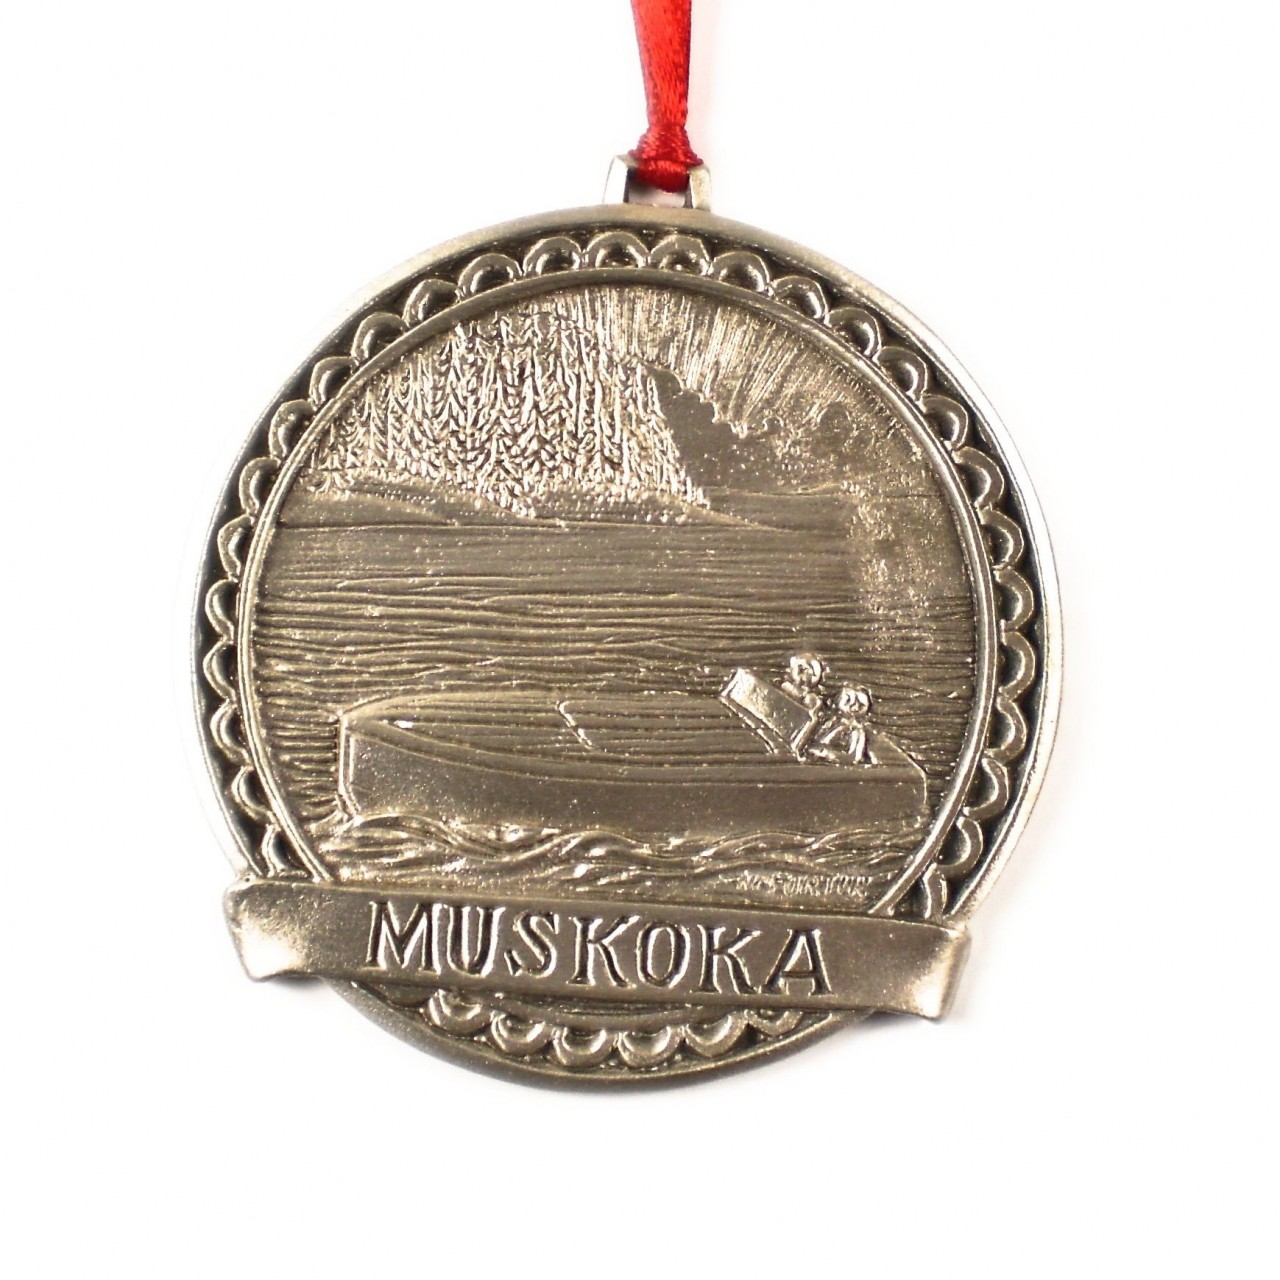 Muskoka Pewter - Online Shop for Pewter Ornaments, Jewelry ...